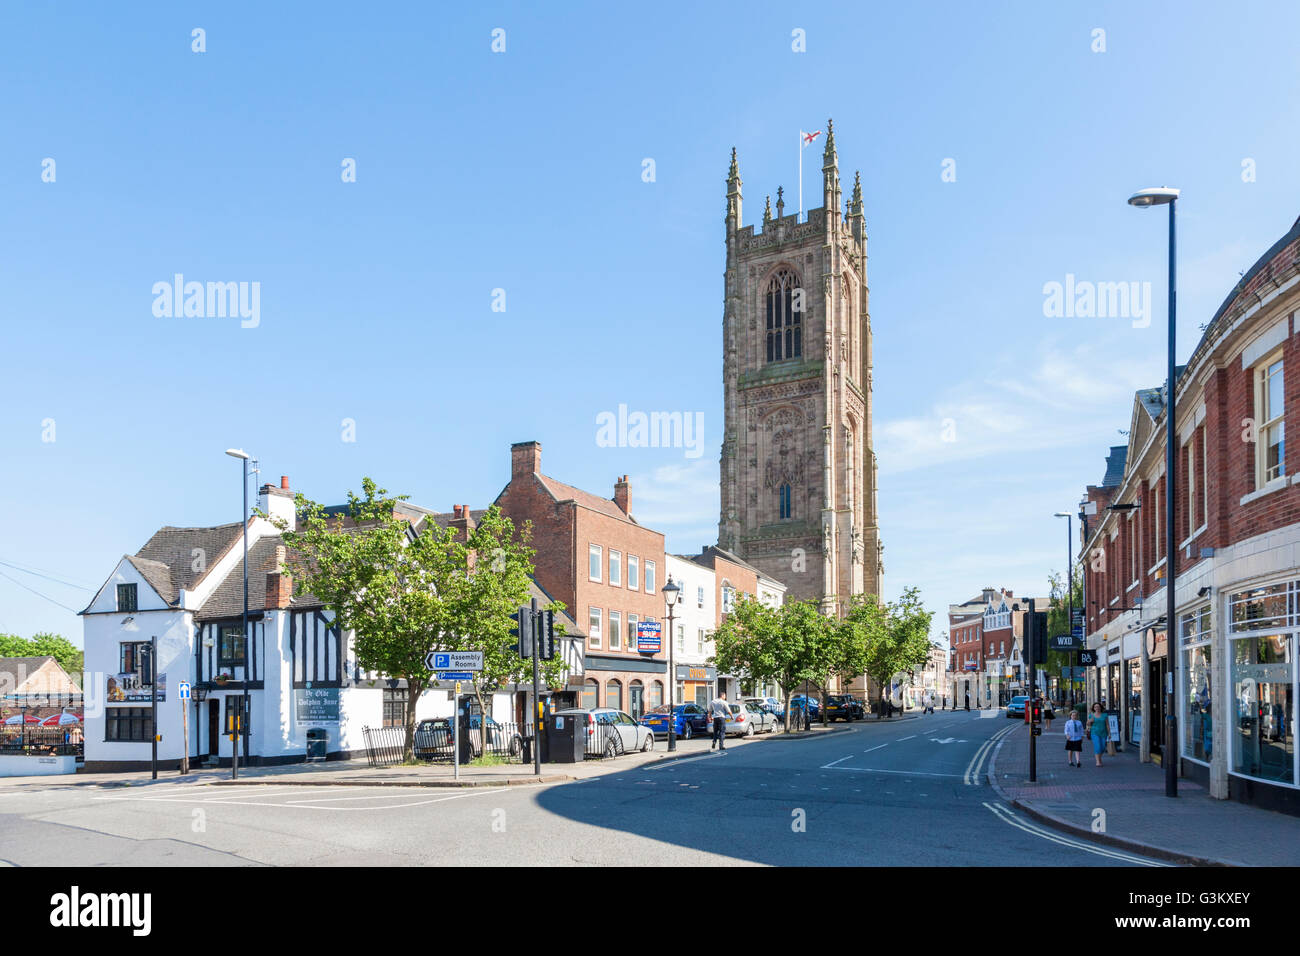 The Cathedral and shops on Iron Gate in Derby city centre, England, UK - Stock Image